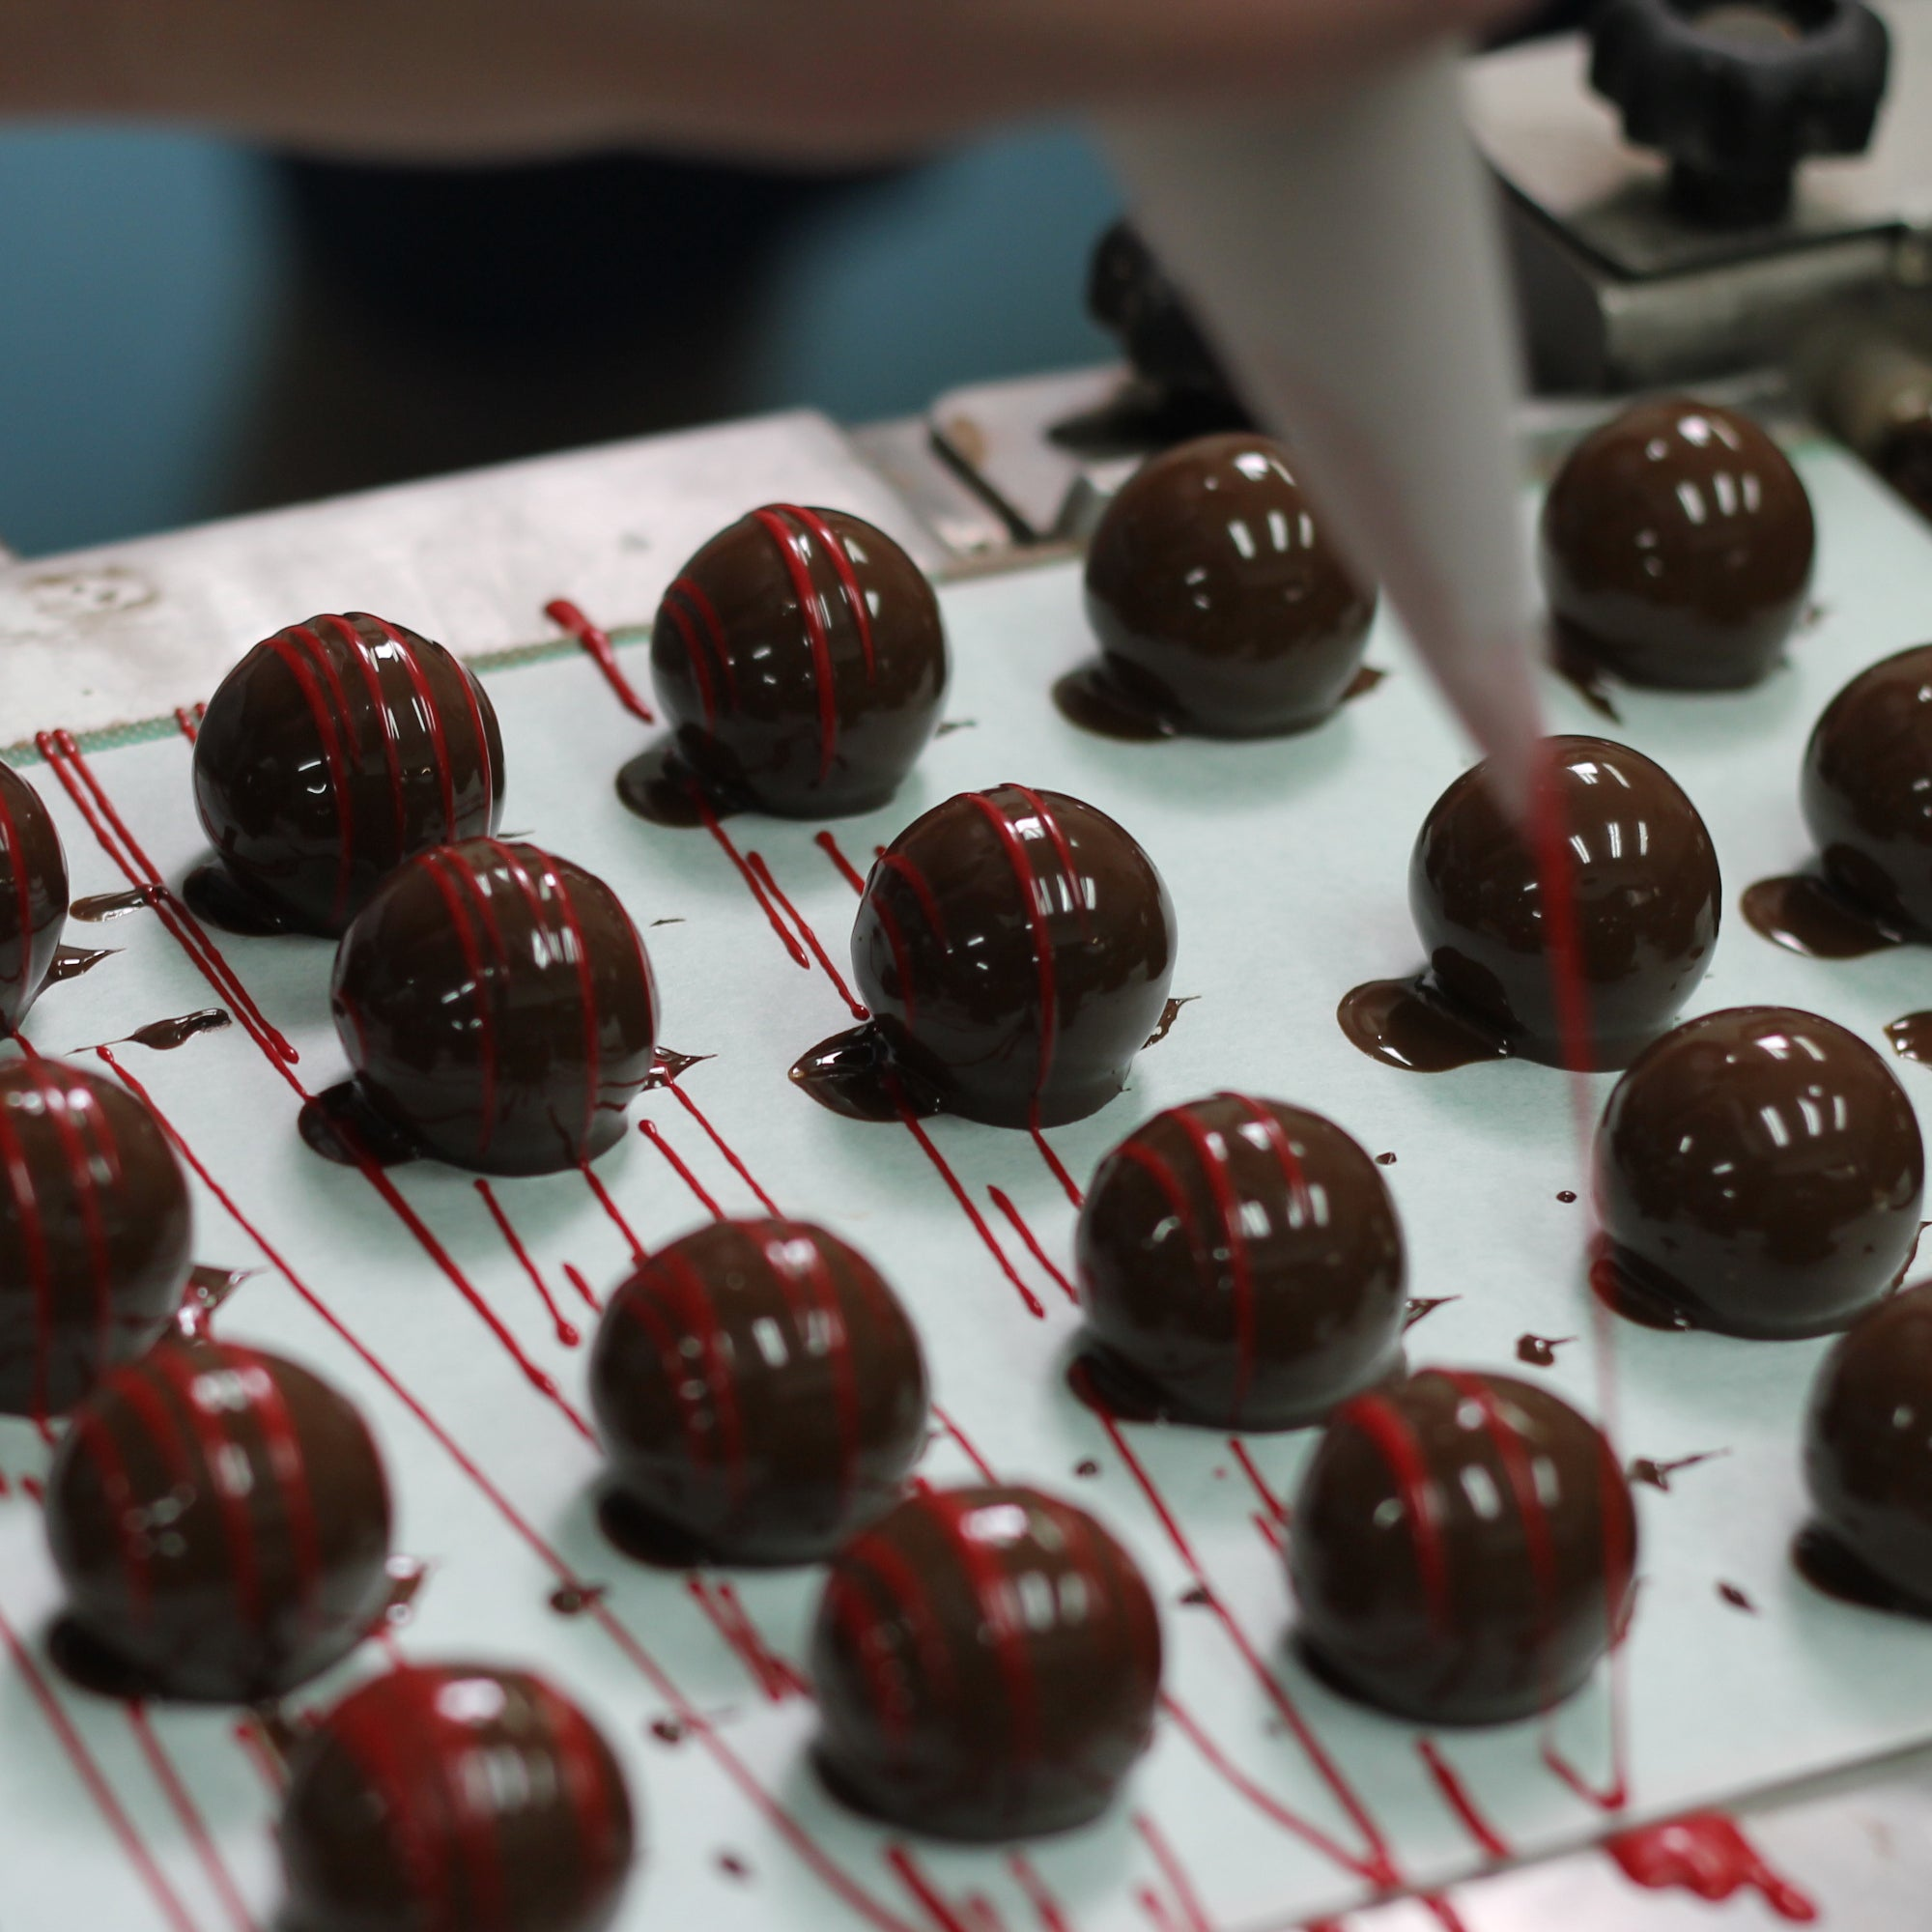 Chocolate Making Experience with Tour and Tastings - Ages  14+